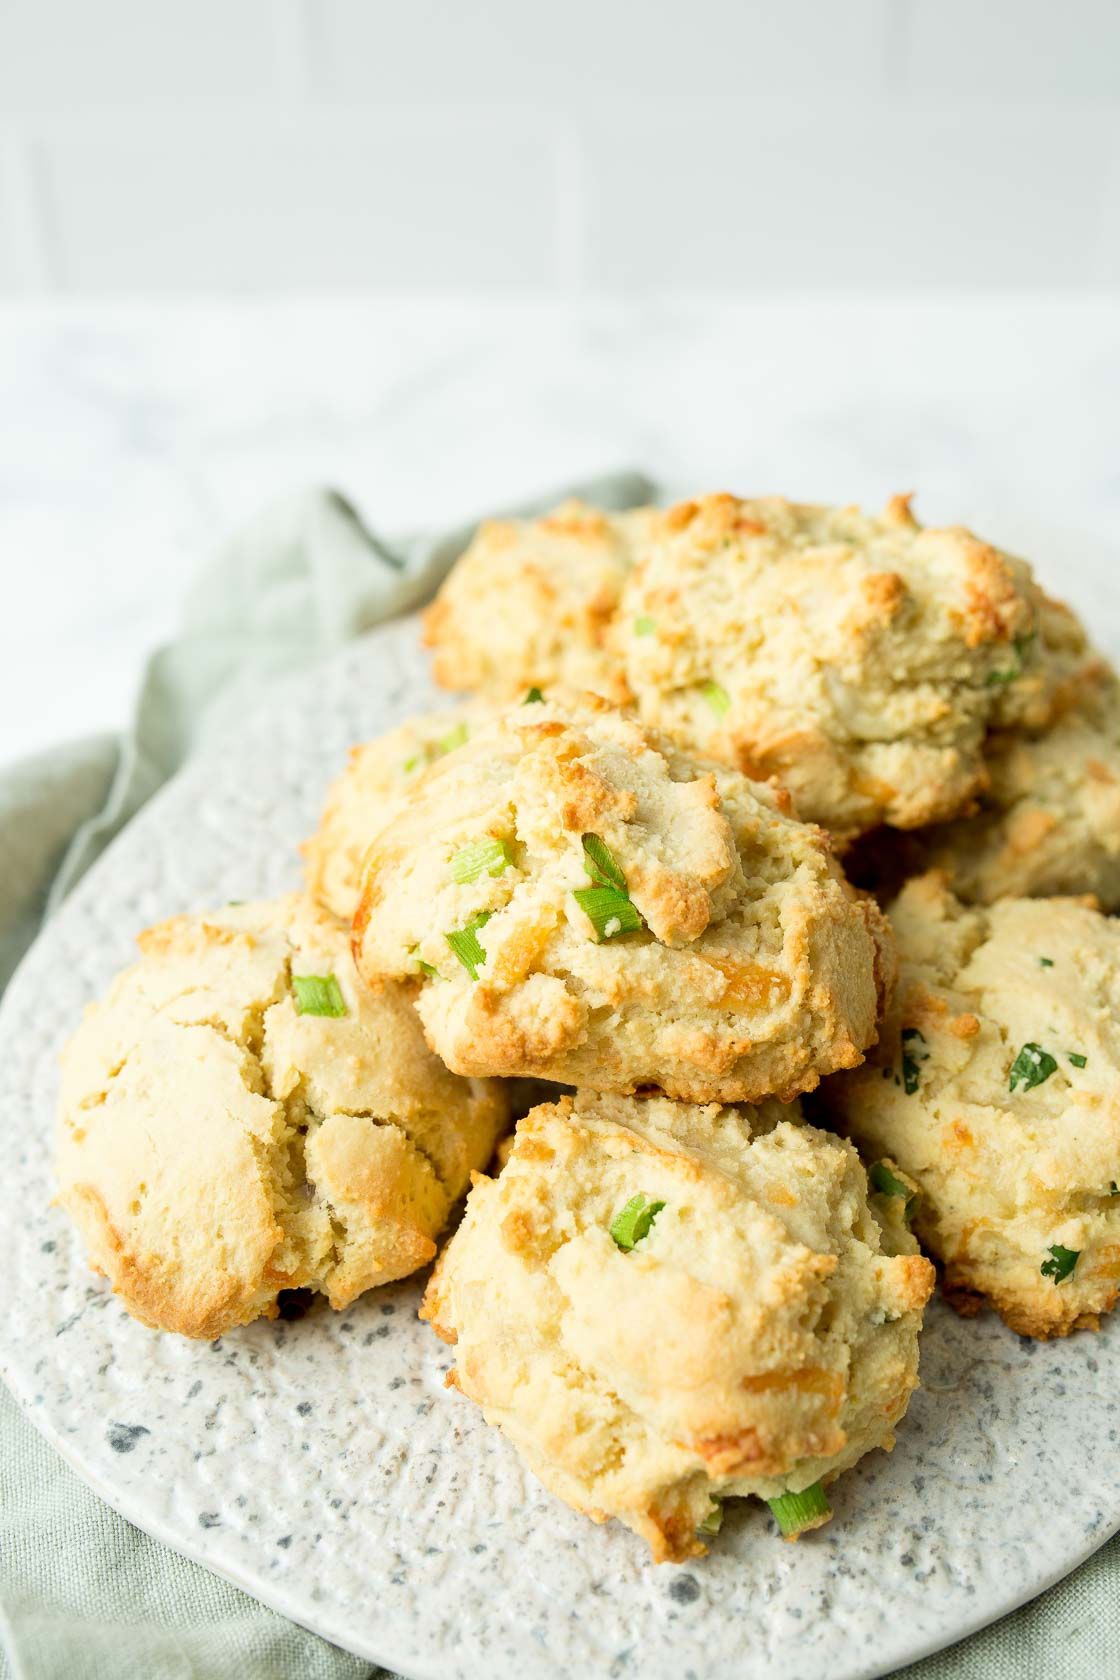 Cheddar Bay Biscuits with Almond Flour